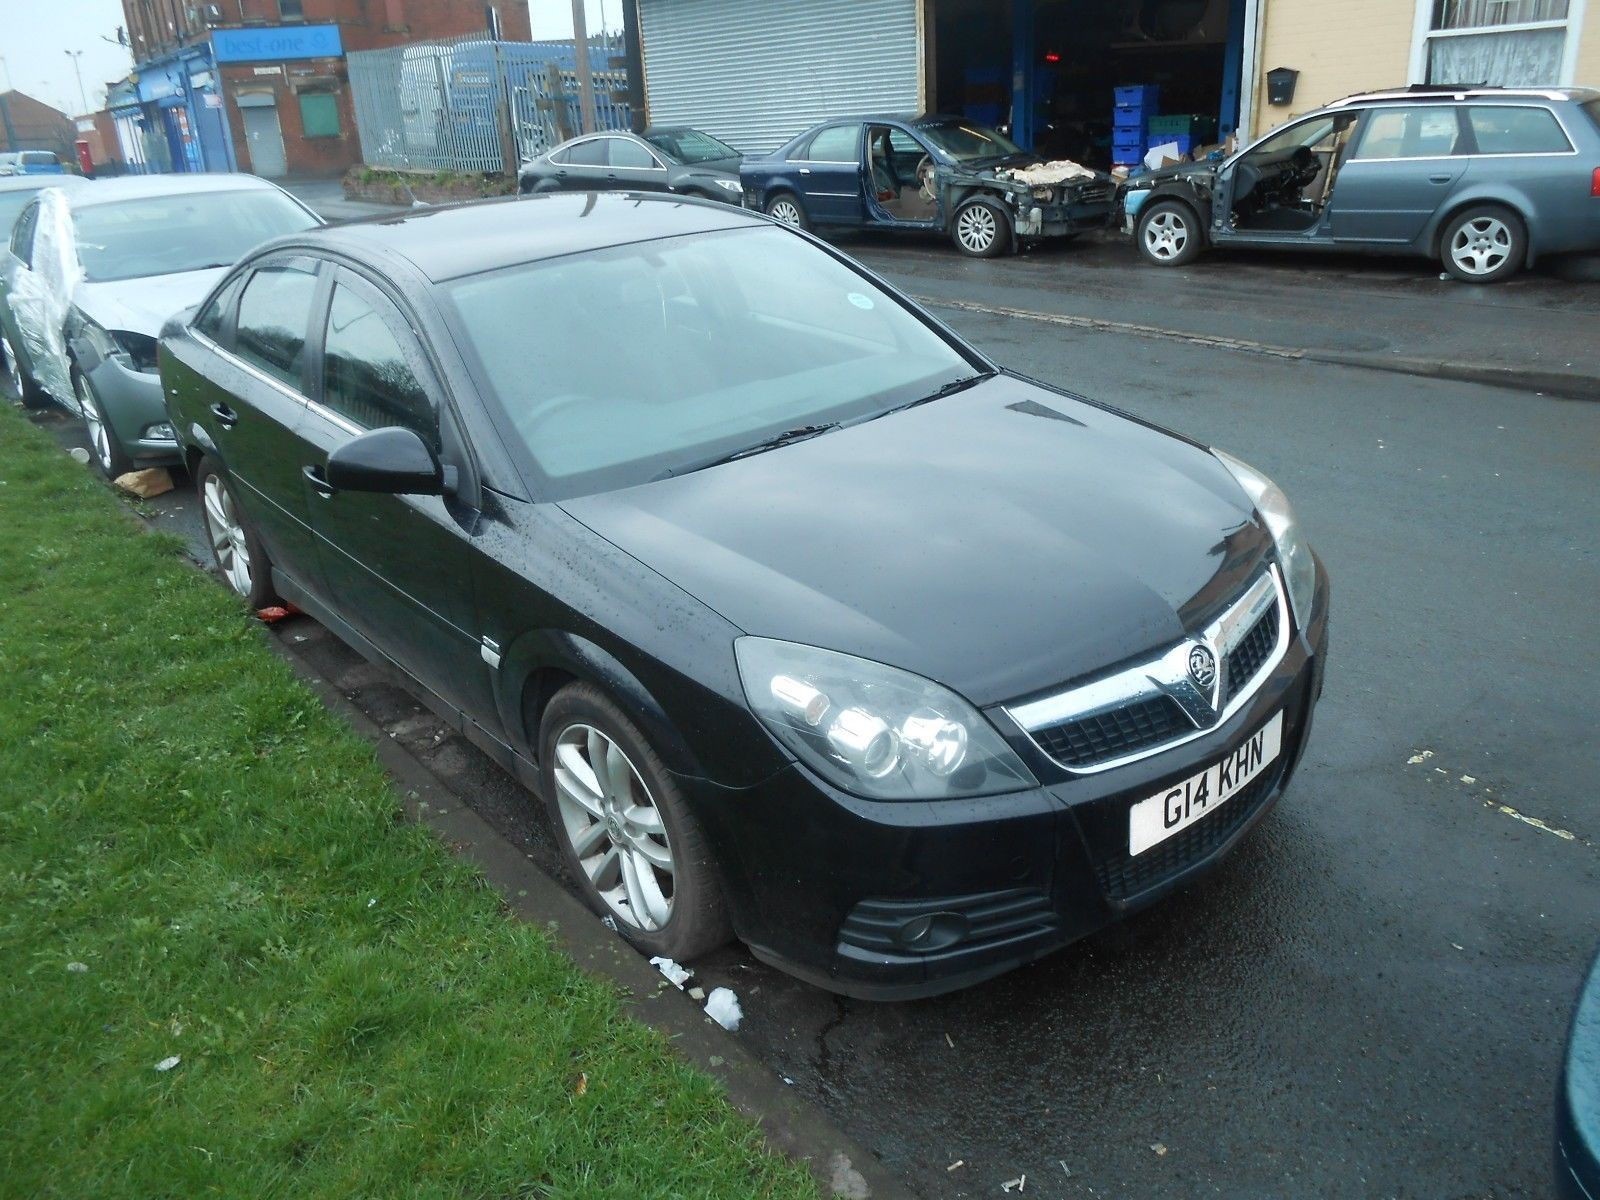 eBay: Vauxhall Vectra C 1.9 cdti manual breaking for parts & spares  #carparts #